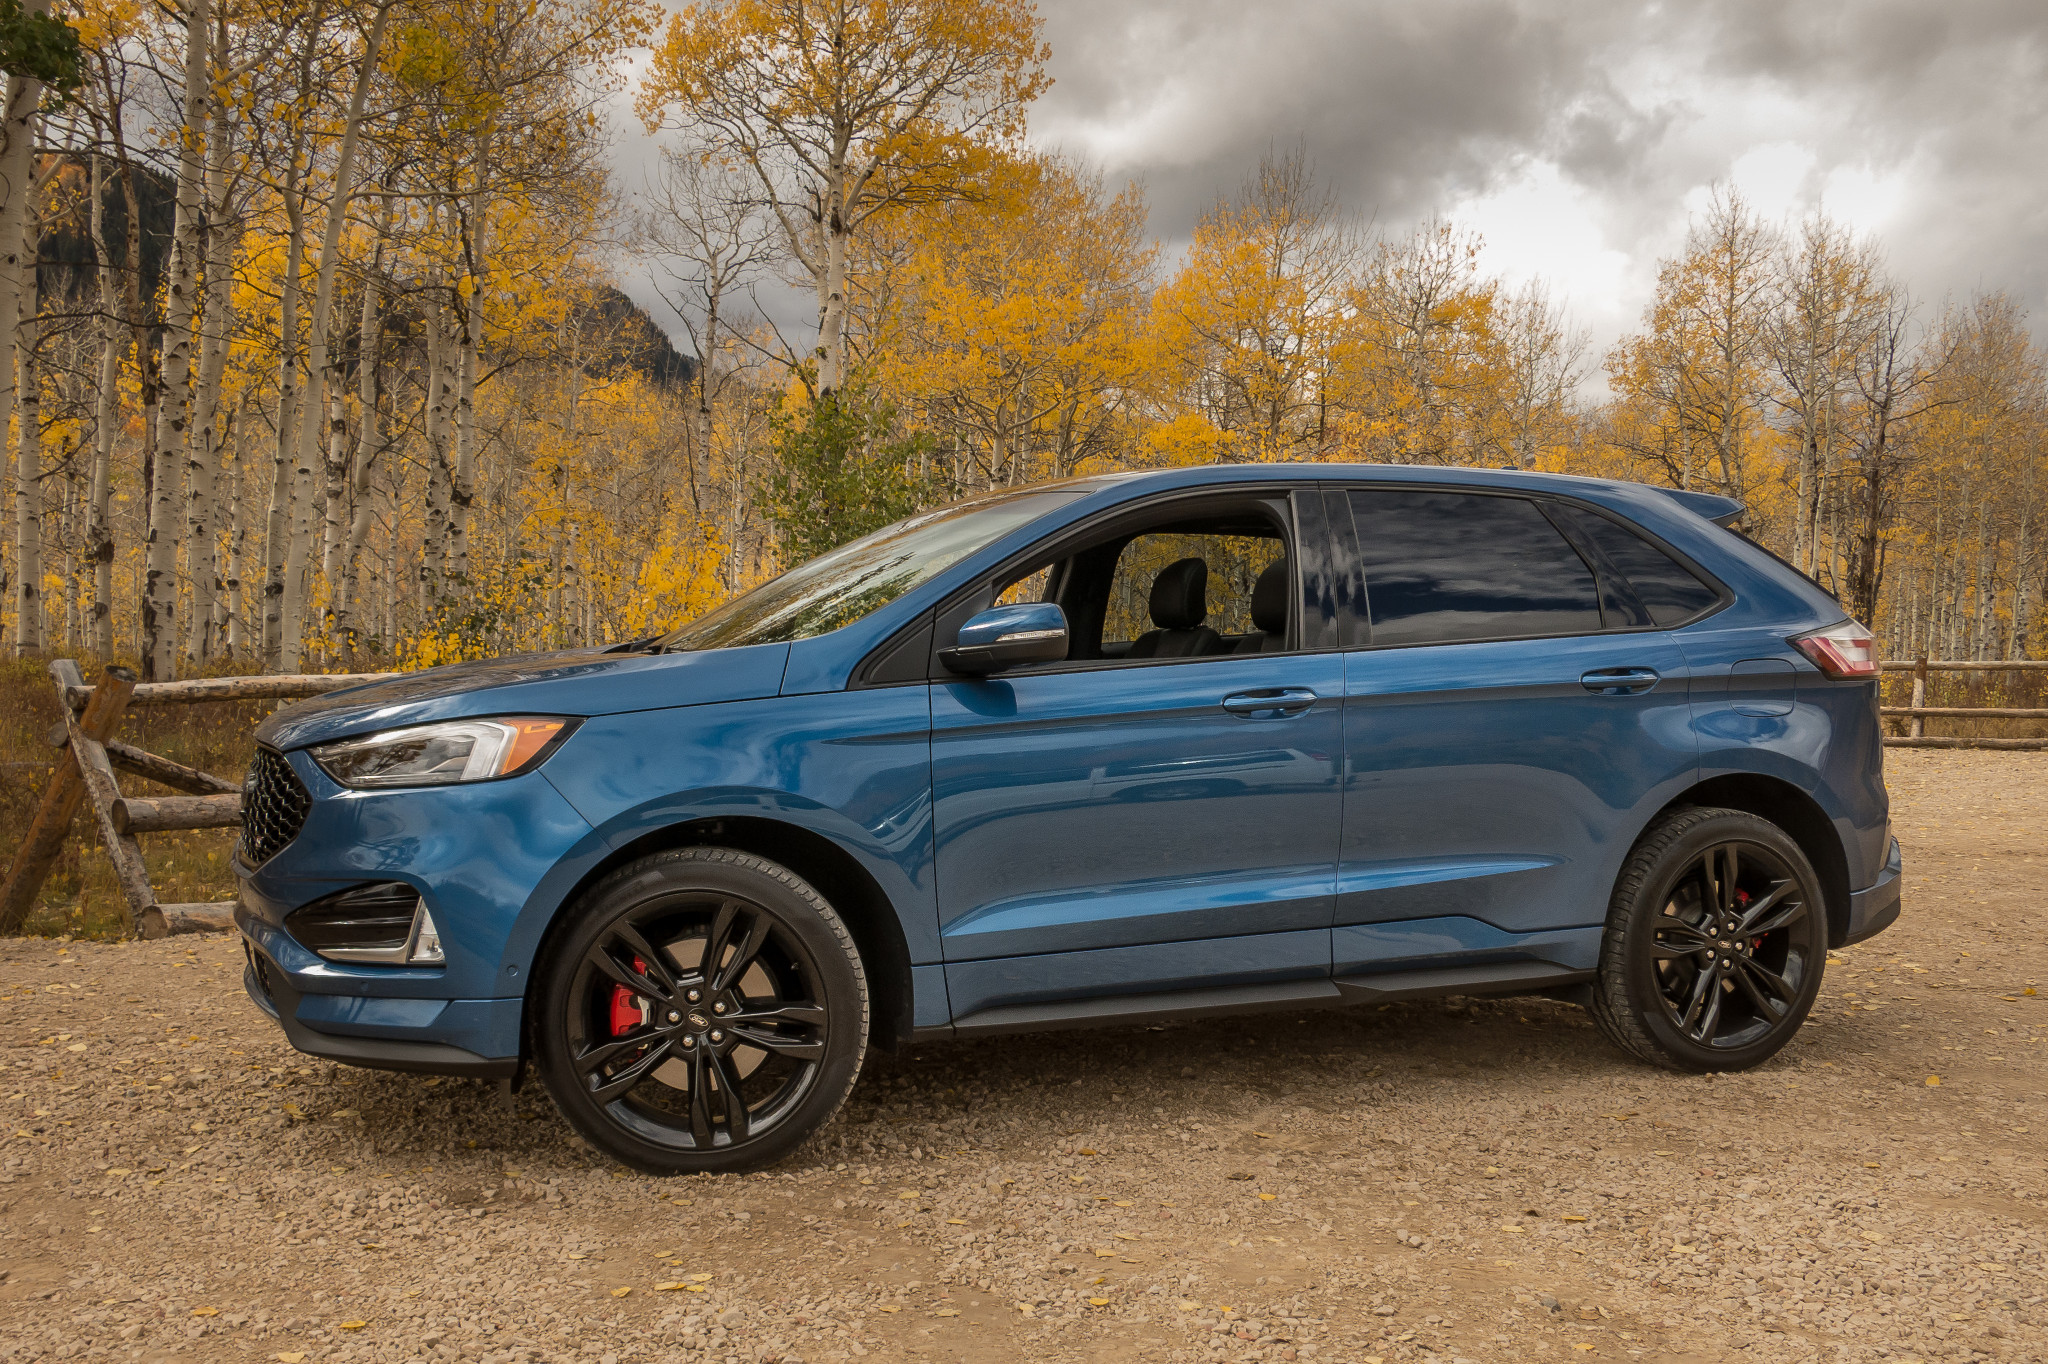 2019 Ford Edge: Everything You Need to Know